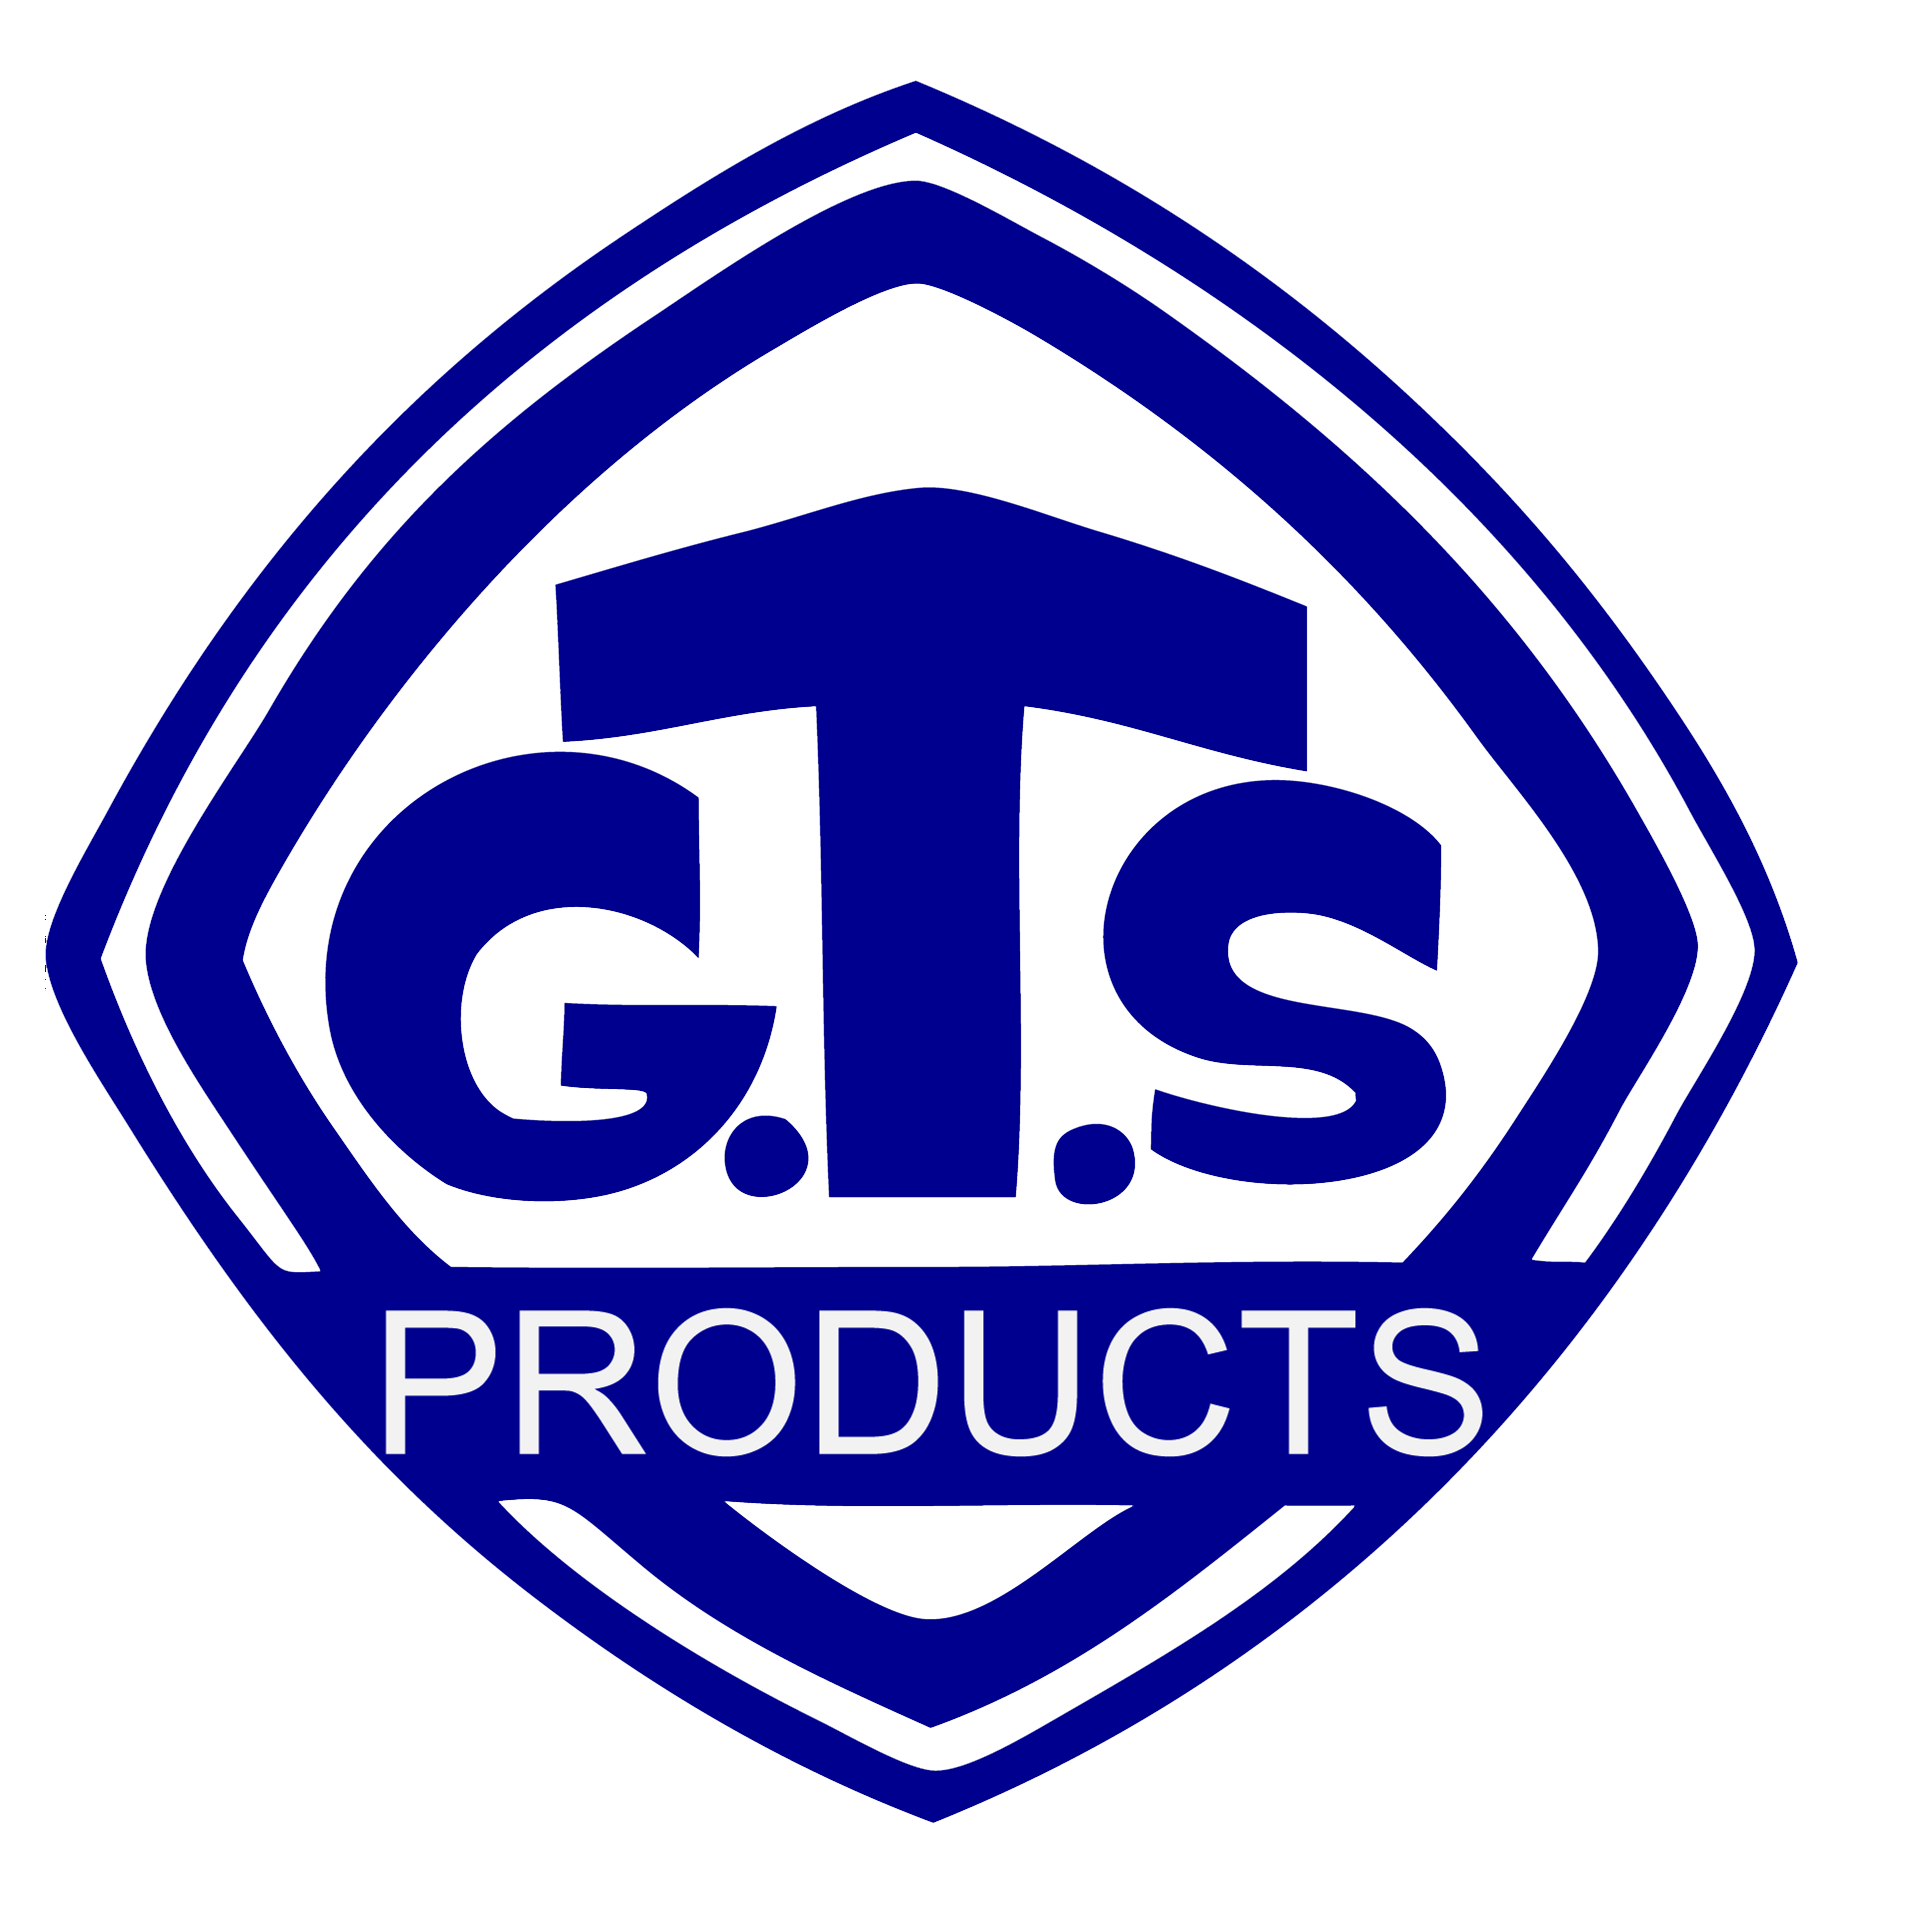 GT surgical (PVT) ltd